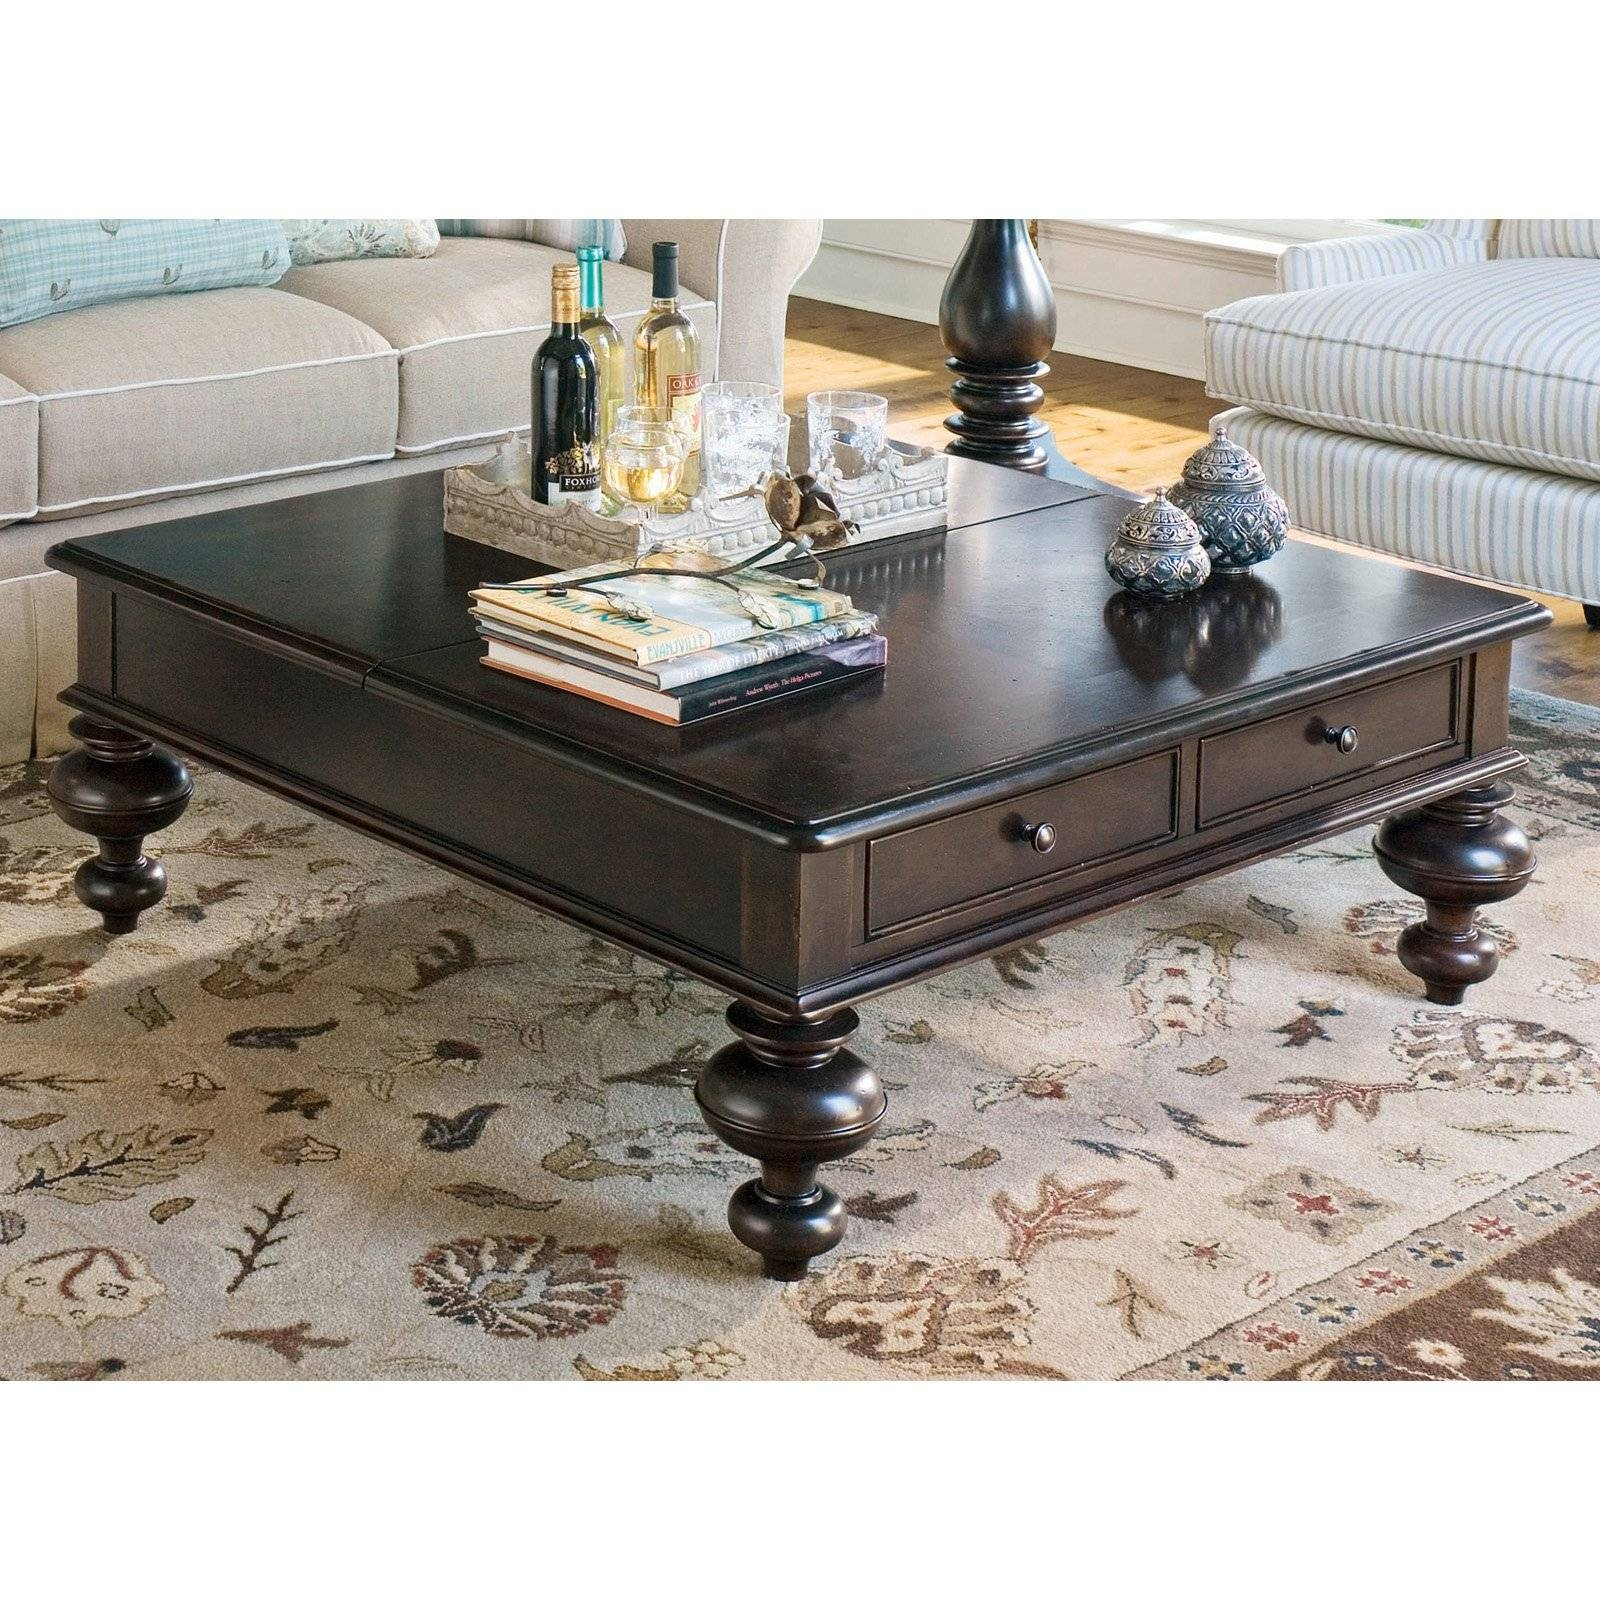 Paula Deen Home Put Your Feet Up Square Linen Wood Lift Top Coffee inside Coffee Tables Top Lifts Up (Image 22 of 30)